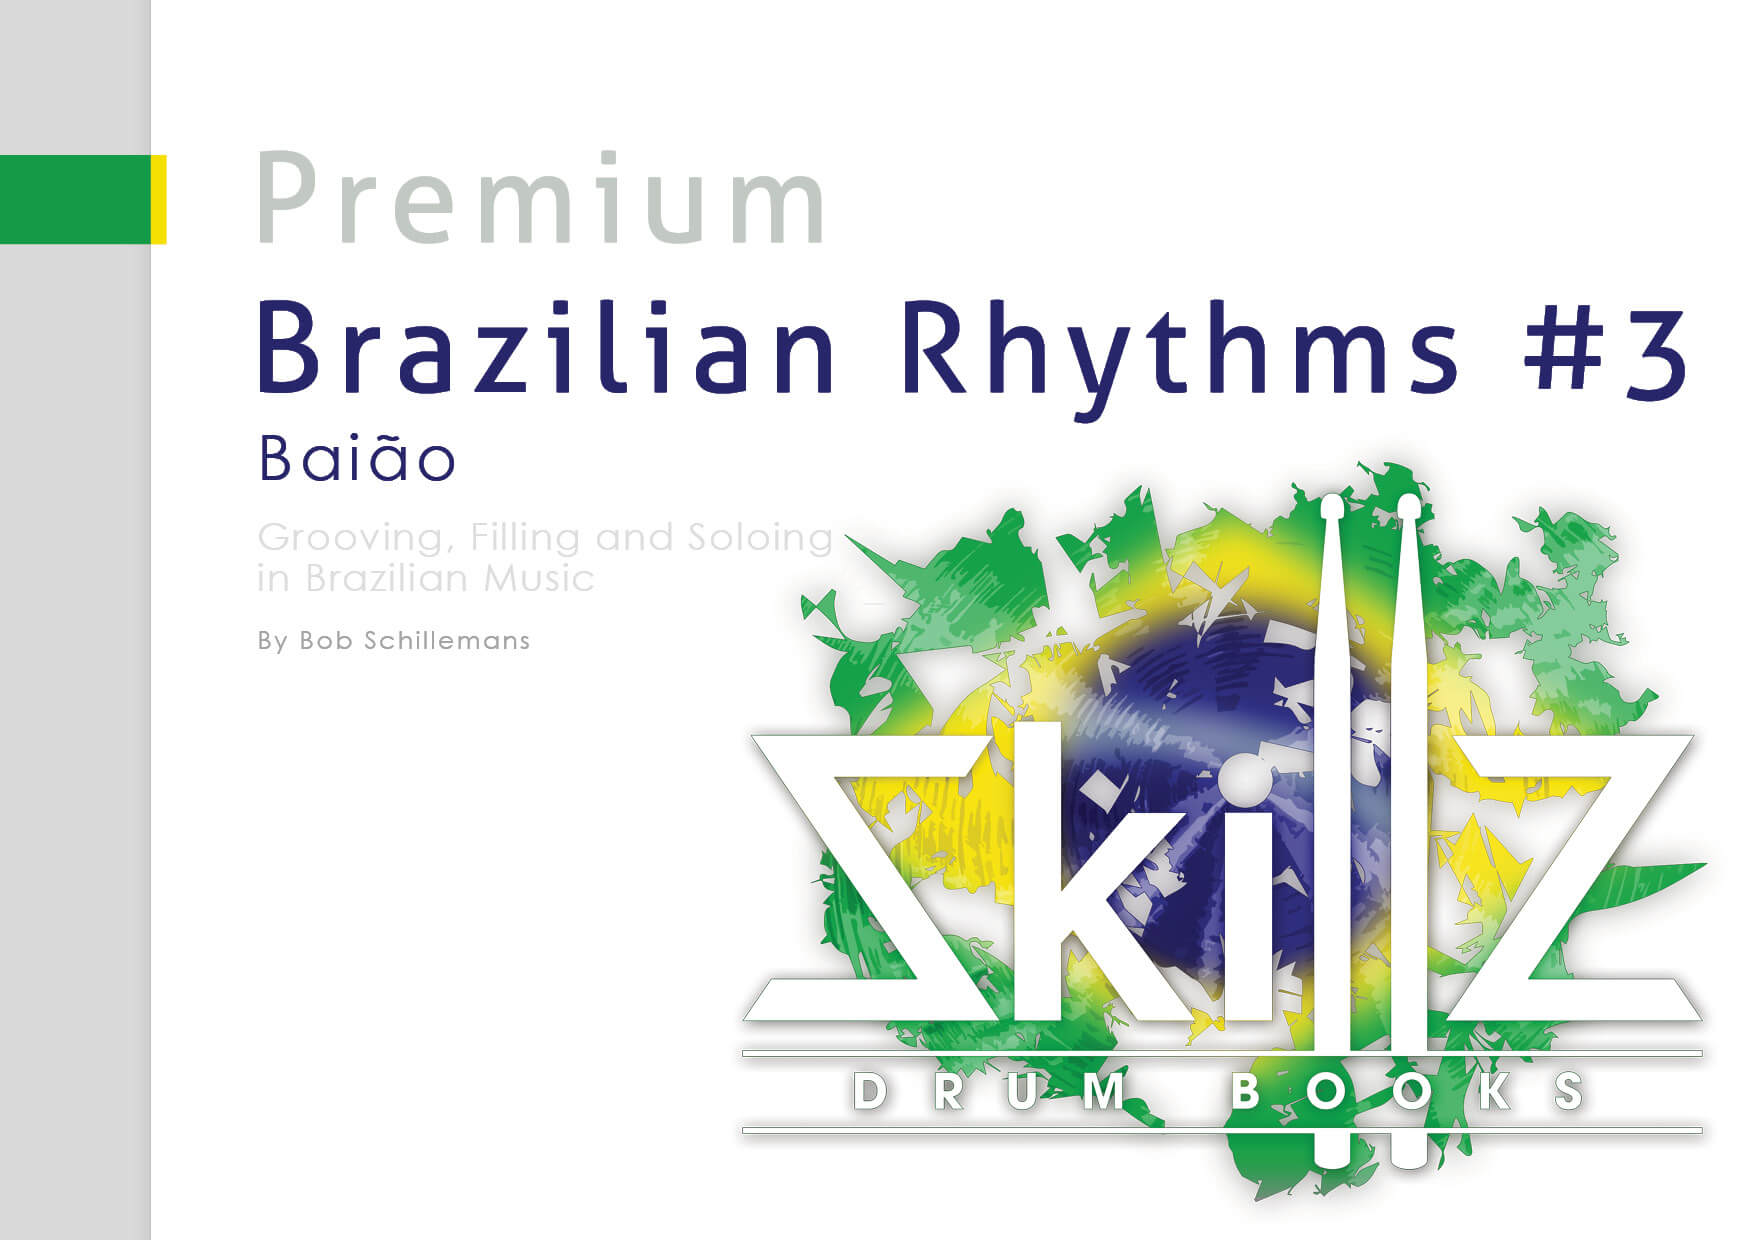 Brazilian Rhythms Grooving, Filling and Soloing in Brazilian Music Part 3 Baião Premium Drumming Book Course Cover Skillz Drum Lessons